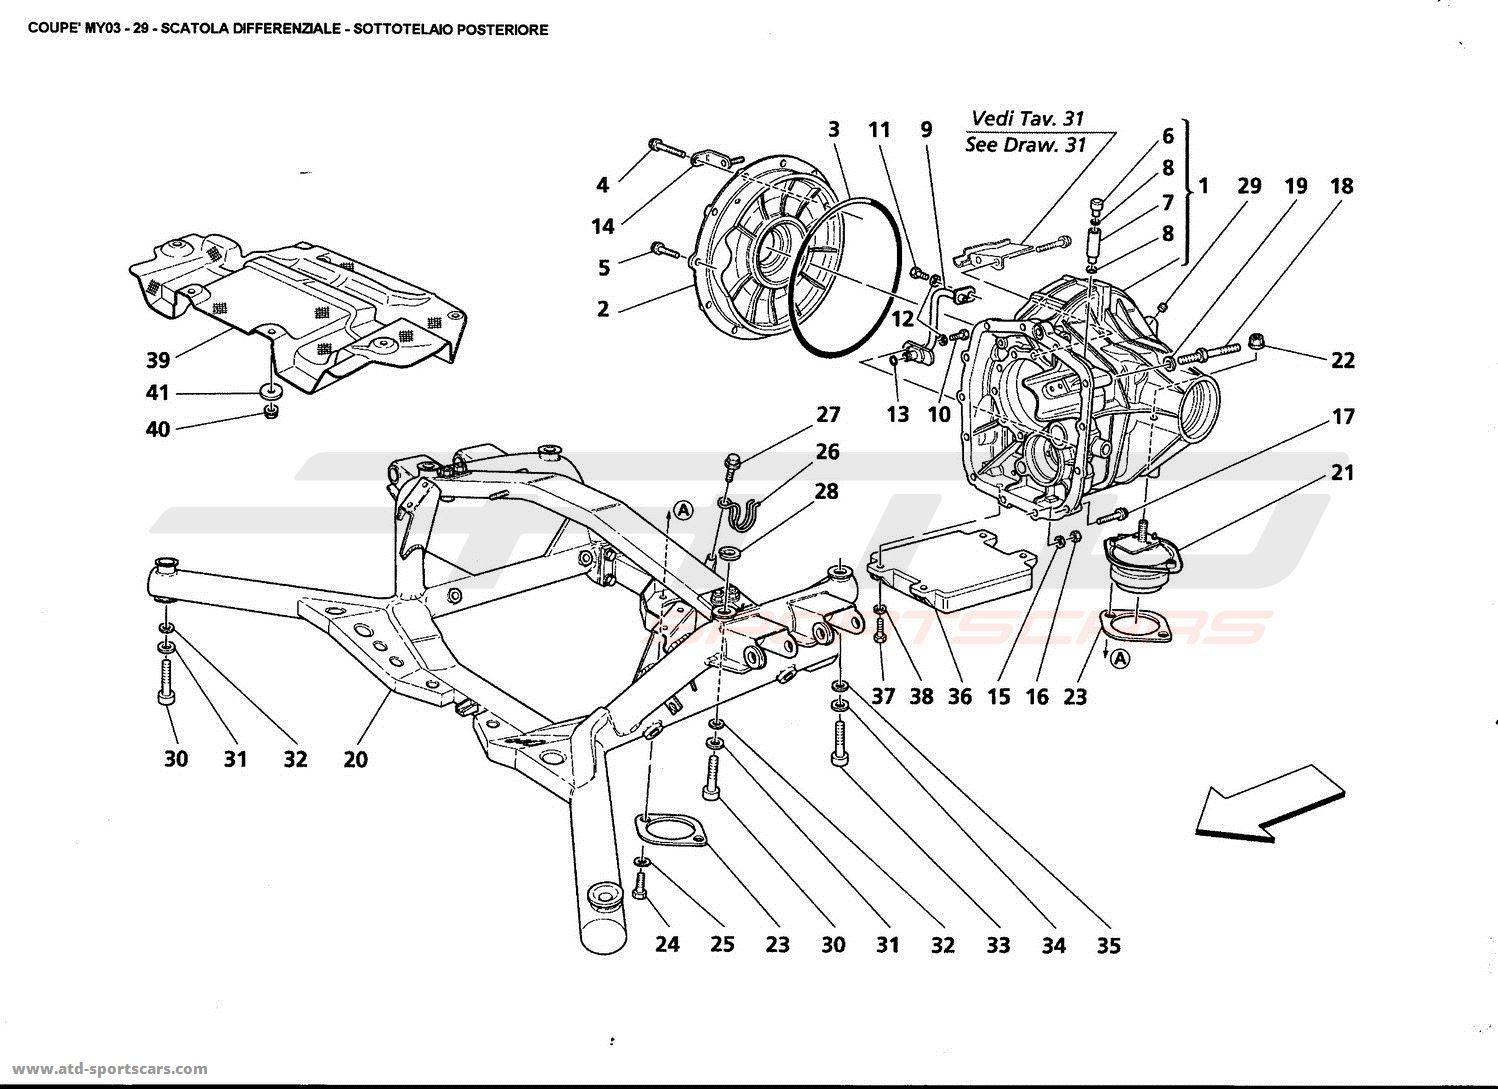 Maserati 4200 GT Coupé 2003 Undercarriage parts at ATD